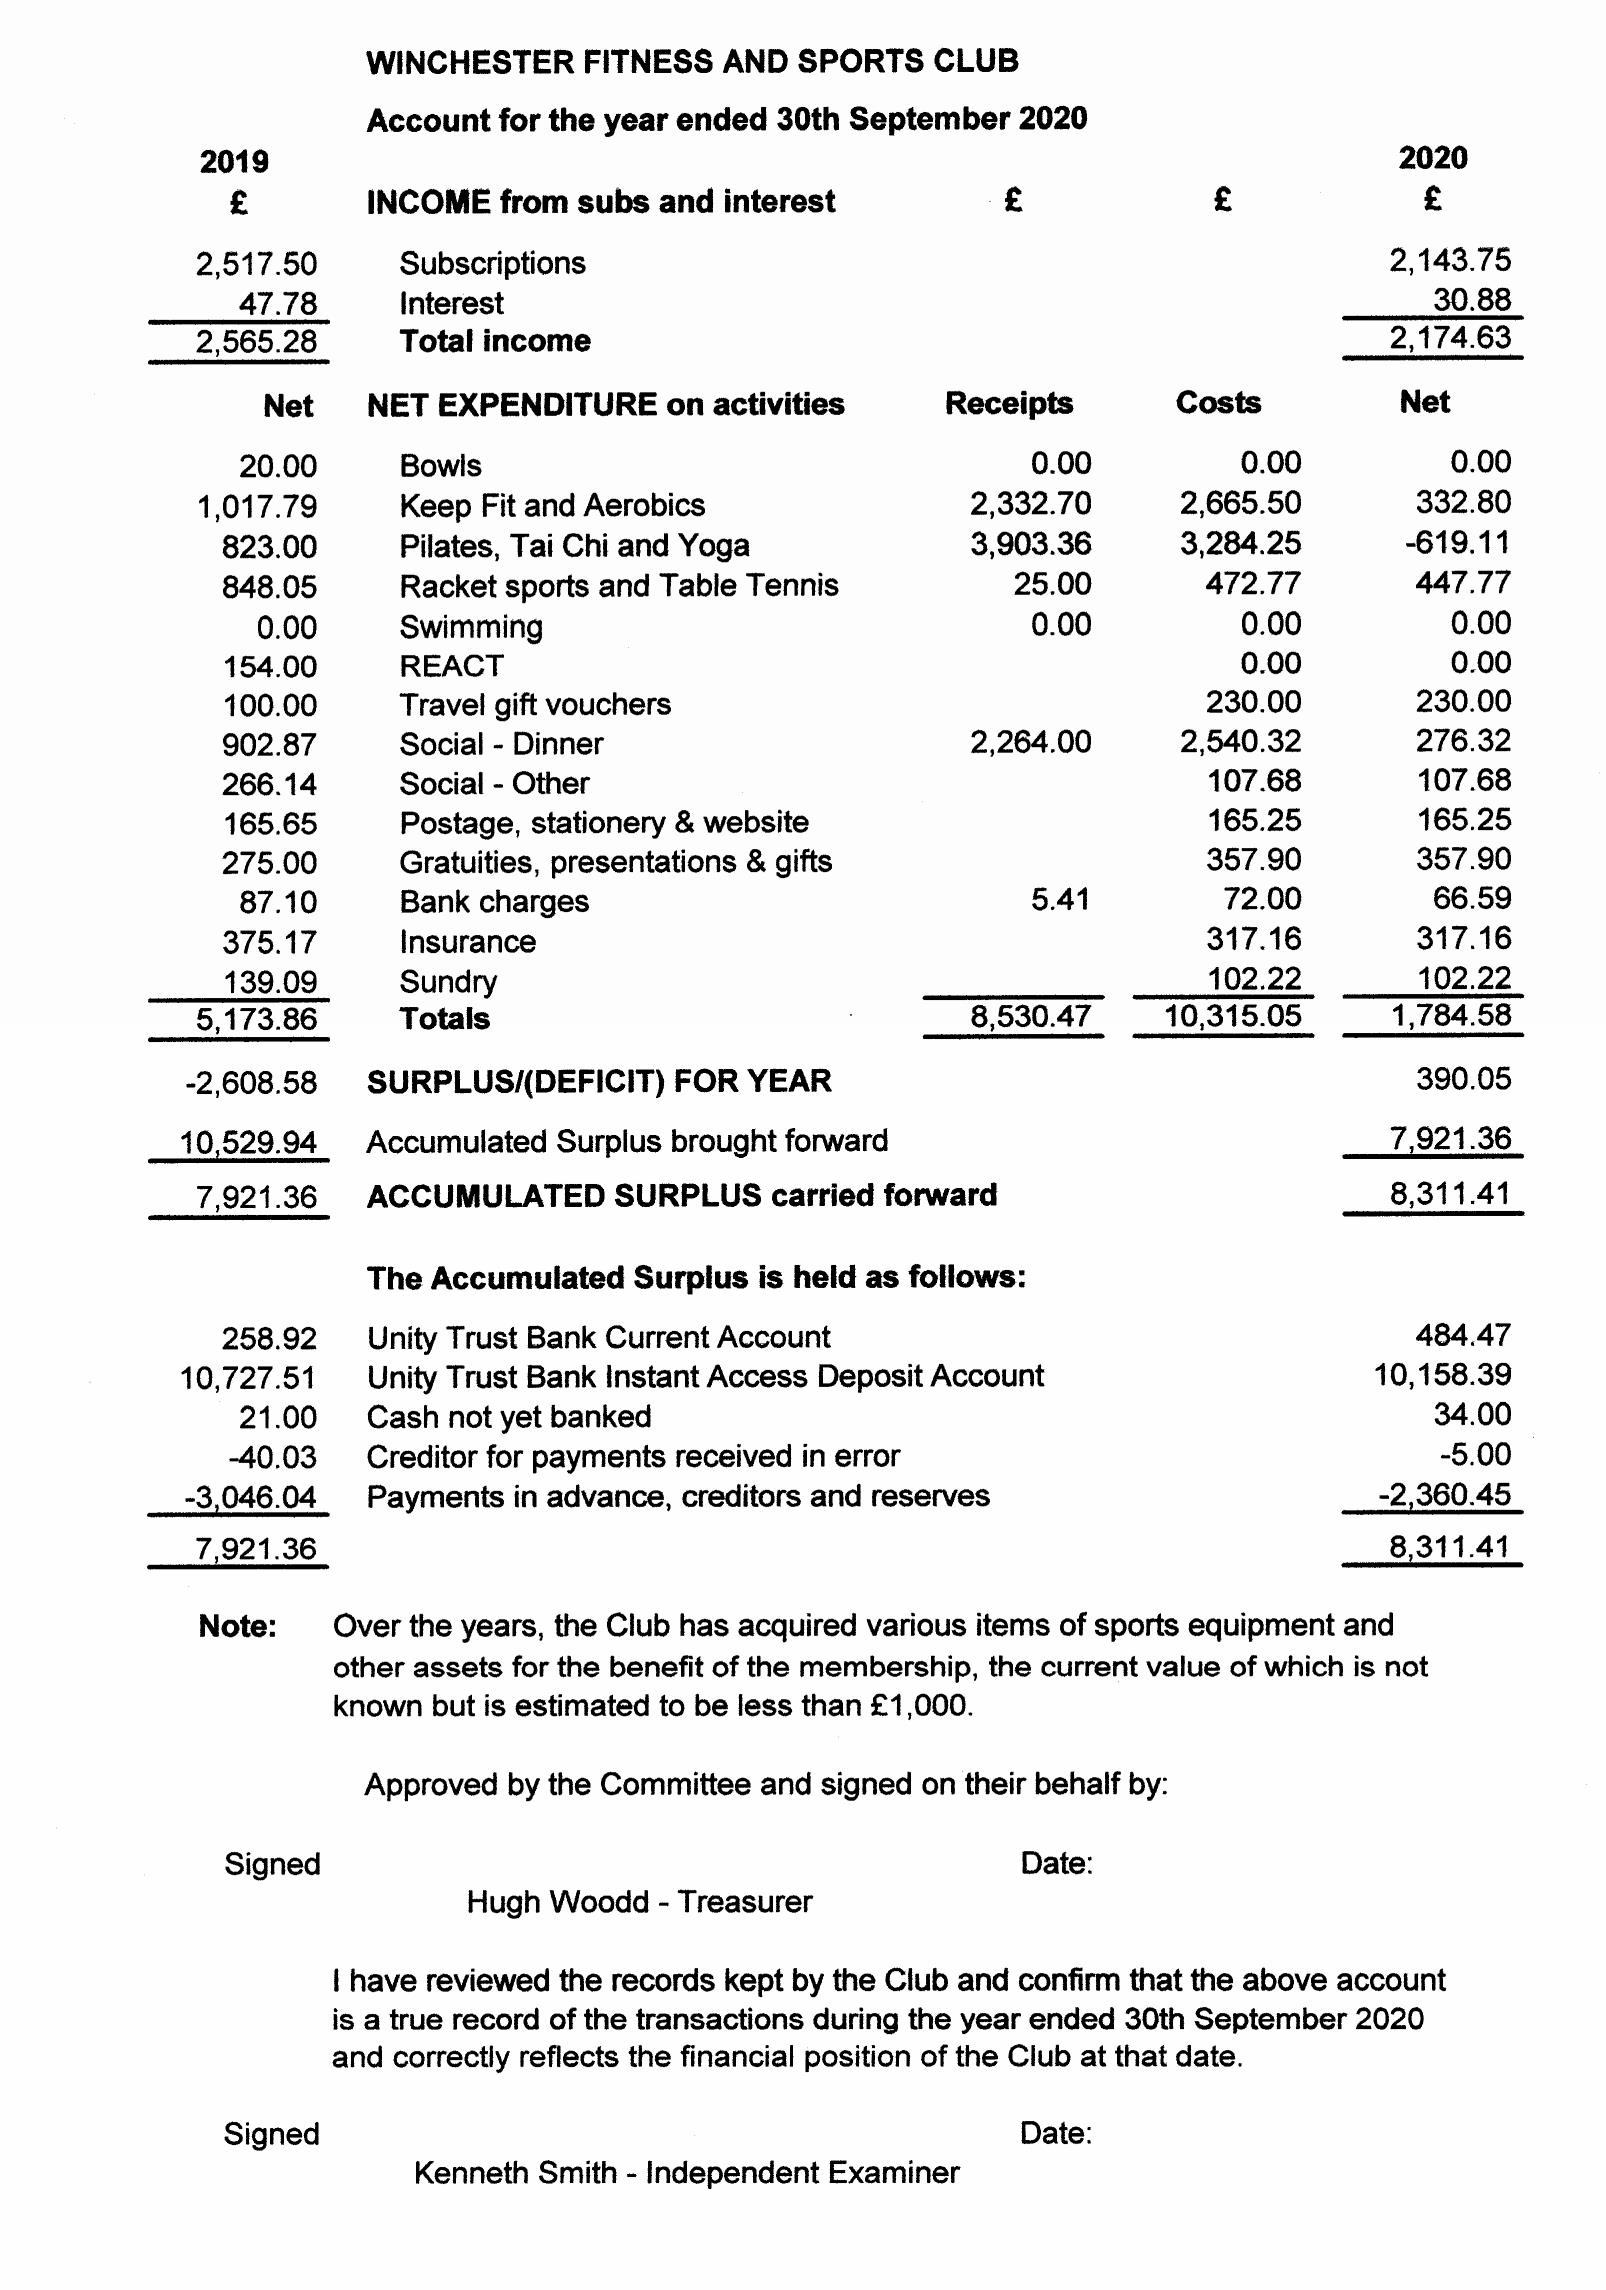 WFSC Accounts to 30.9.20 v2 Page 1